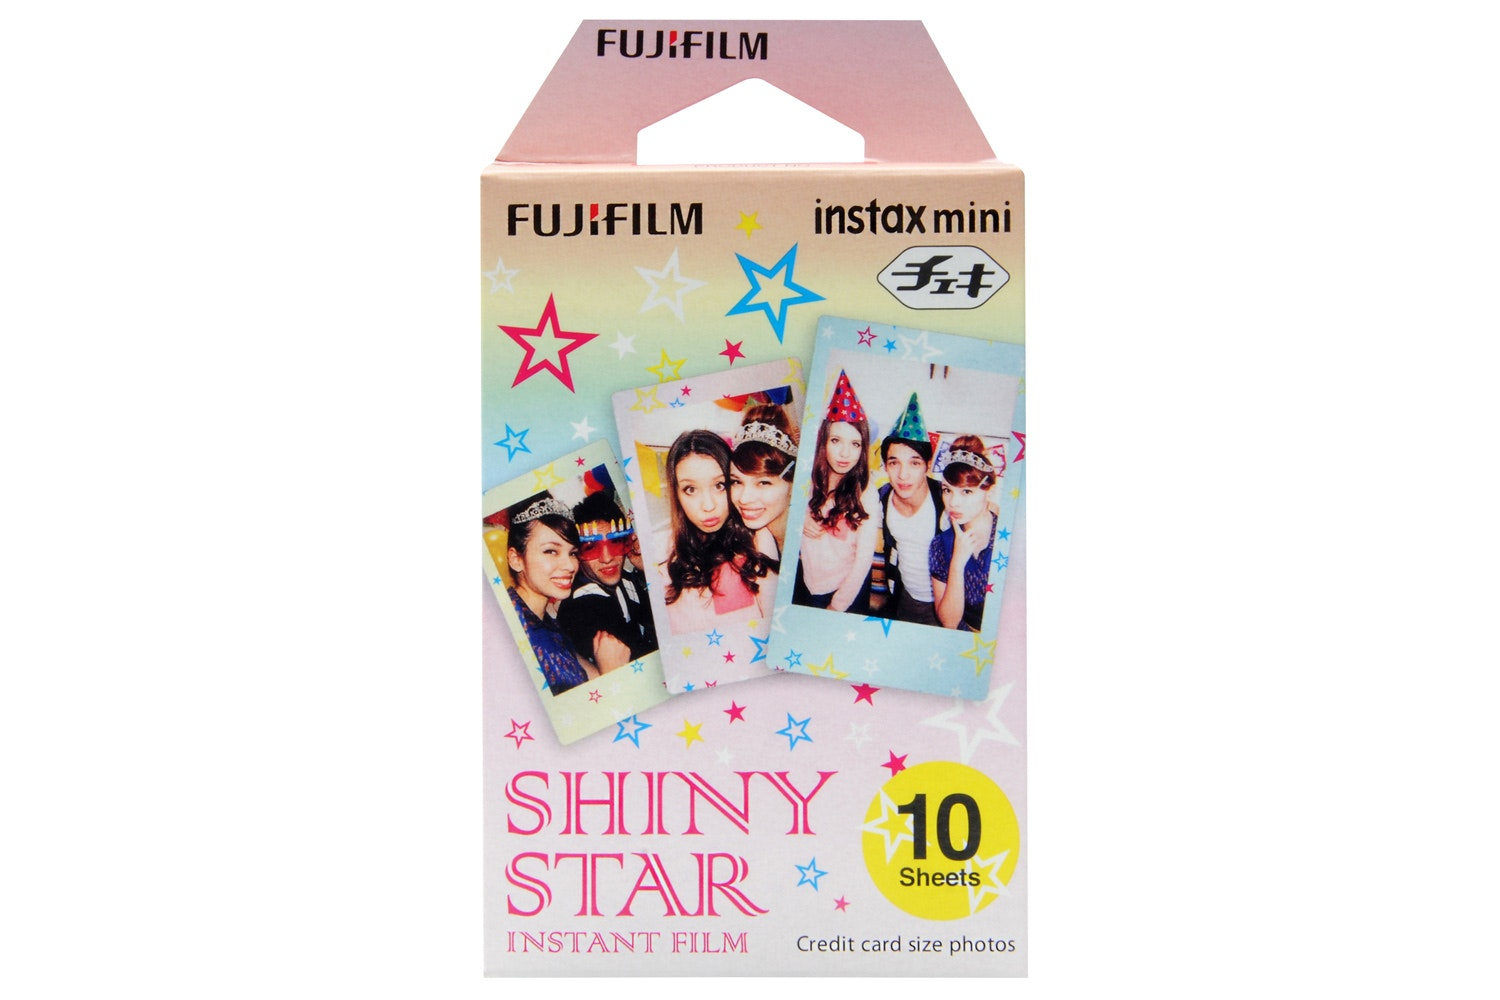 Fujifilm Instax Mini Film 10 Pack | Shiny Star